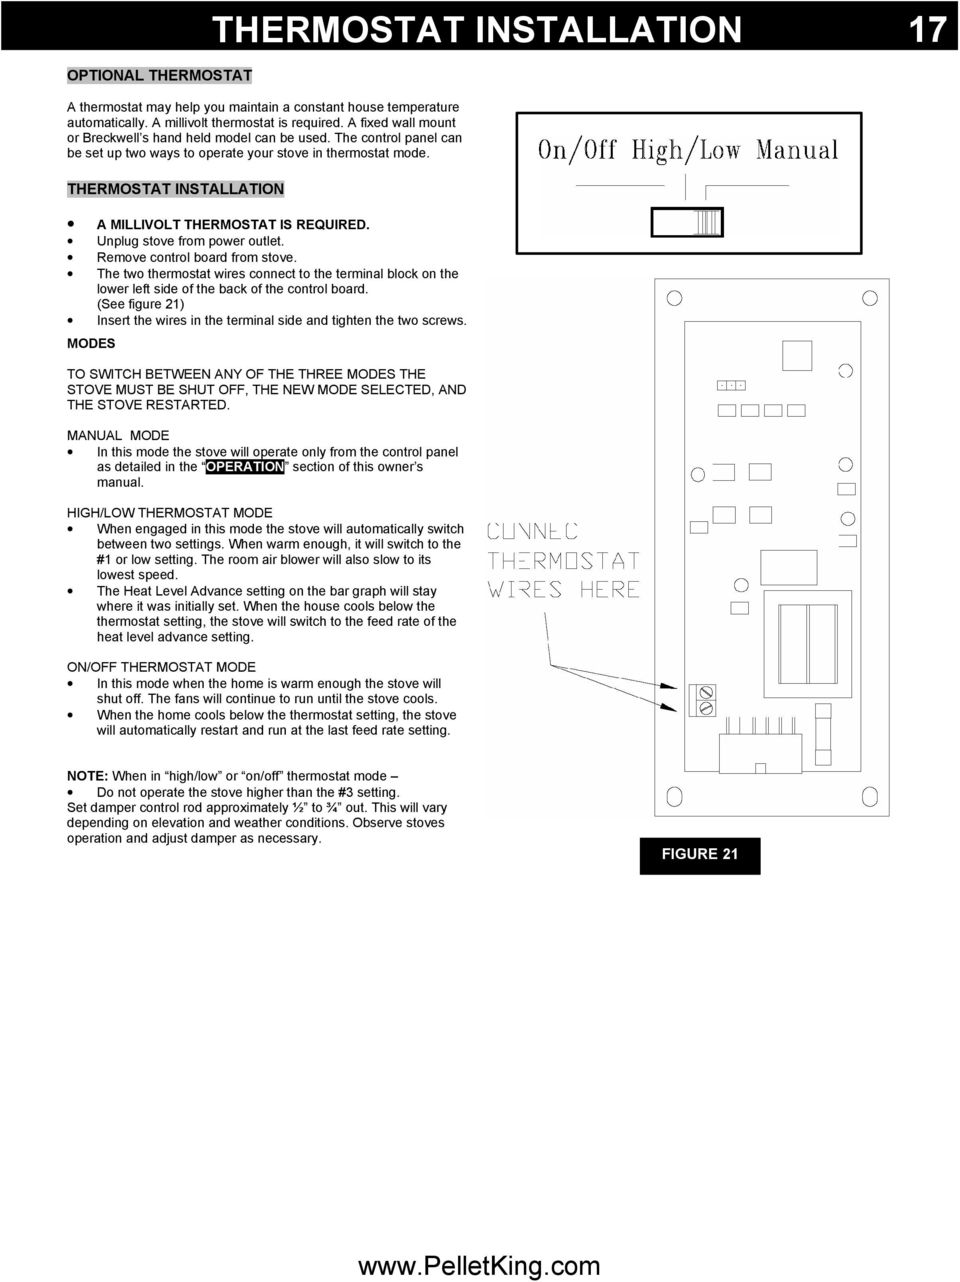 Luxury Series P2000 Owner S Manual Pdf National Brand Alternative Thermostat Wire 20 Gauge 2 500 Ft The Two Wires Connect To Terminal Block On